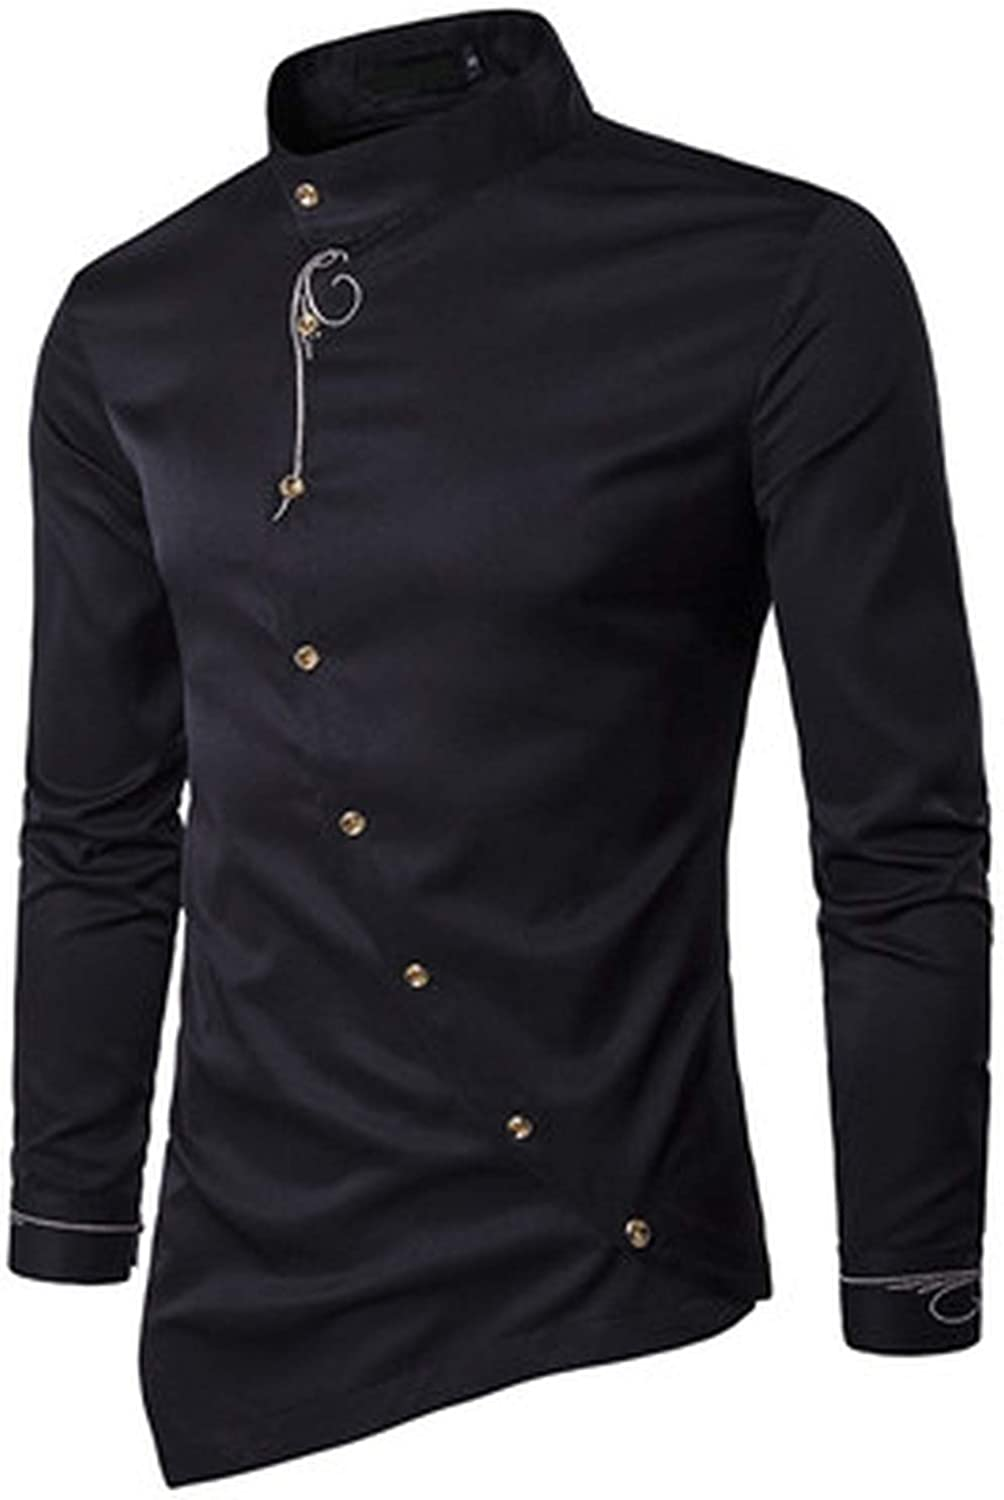 Ting room 2019 New Mens Fashion Cotton Long Sleeved Shirt Solid Color Slim Fit Shirts,Black Asian Size S